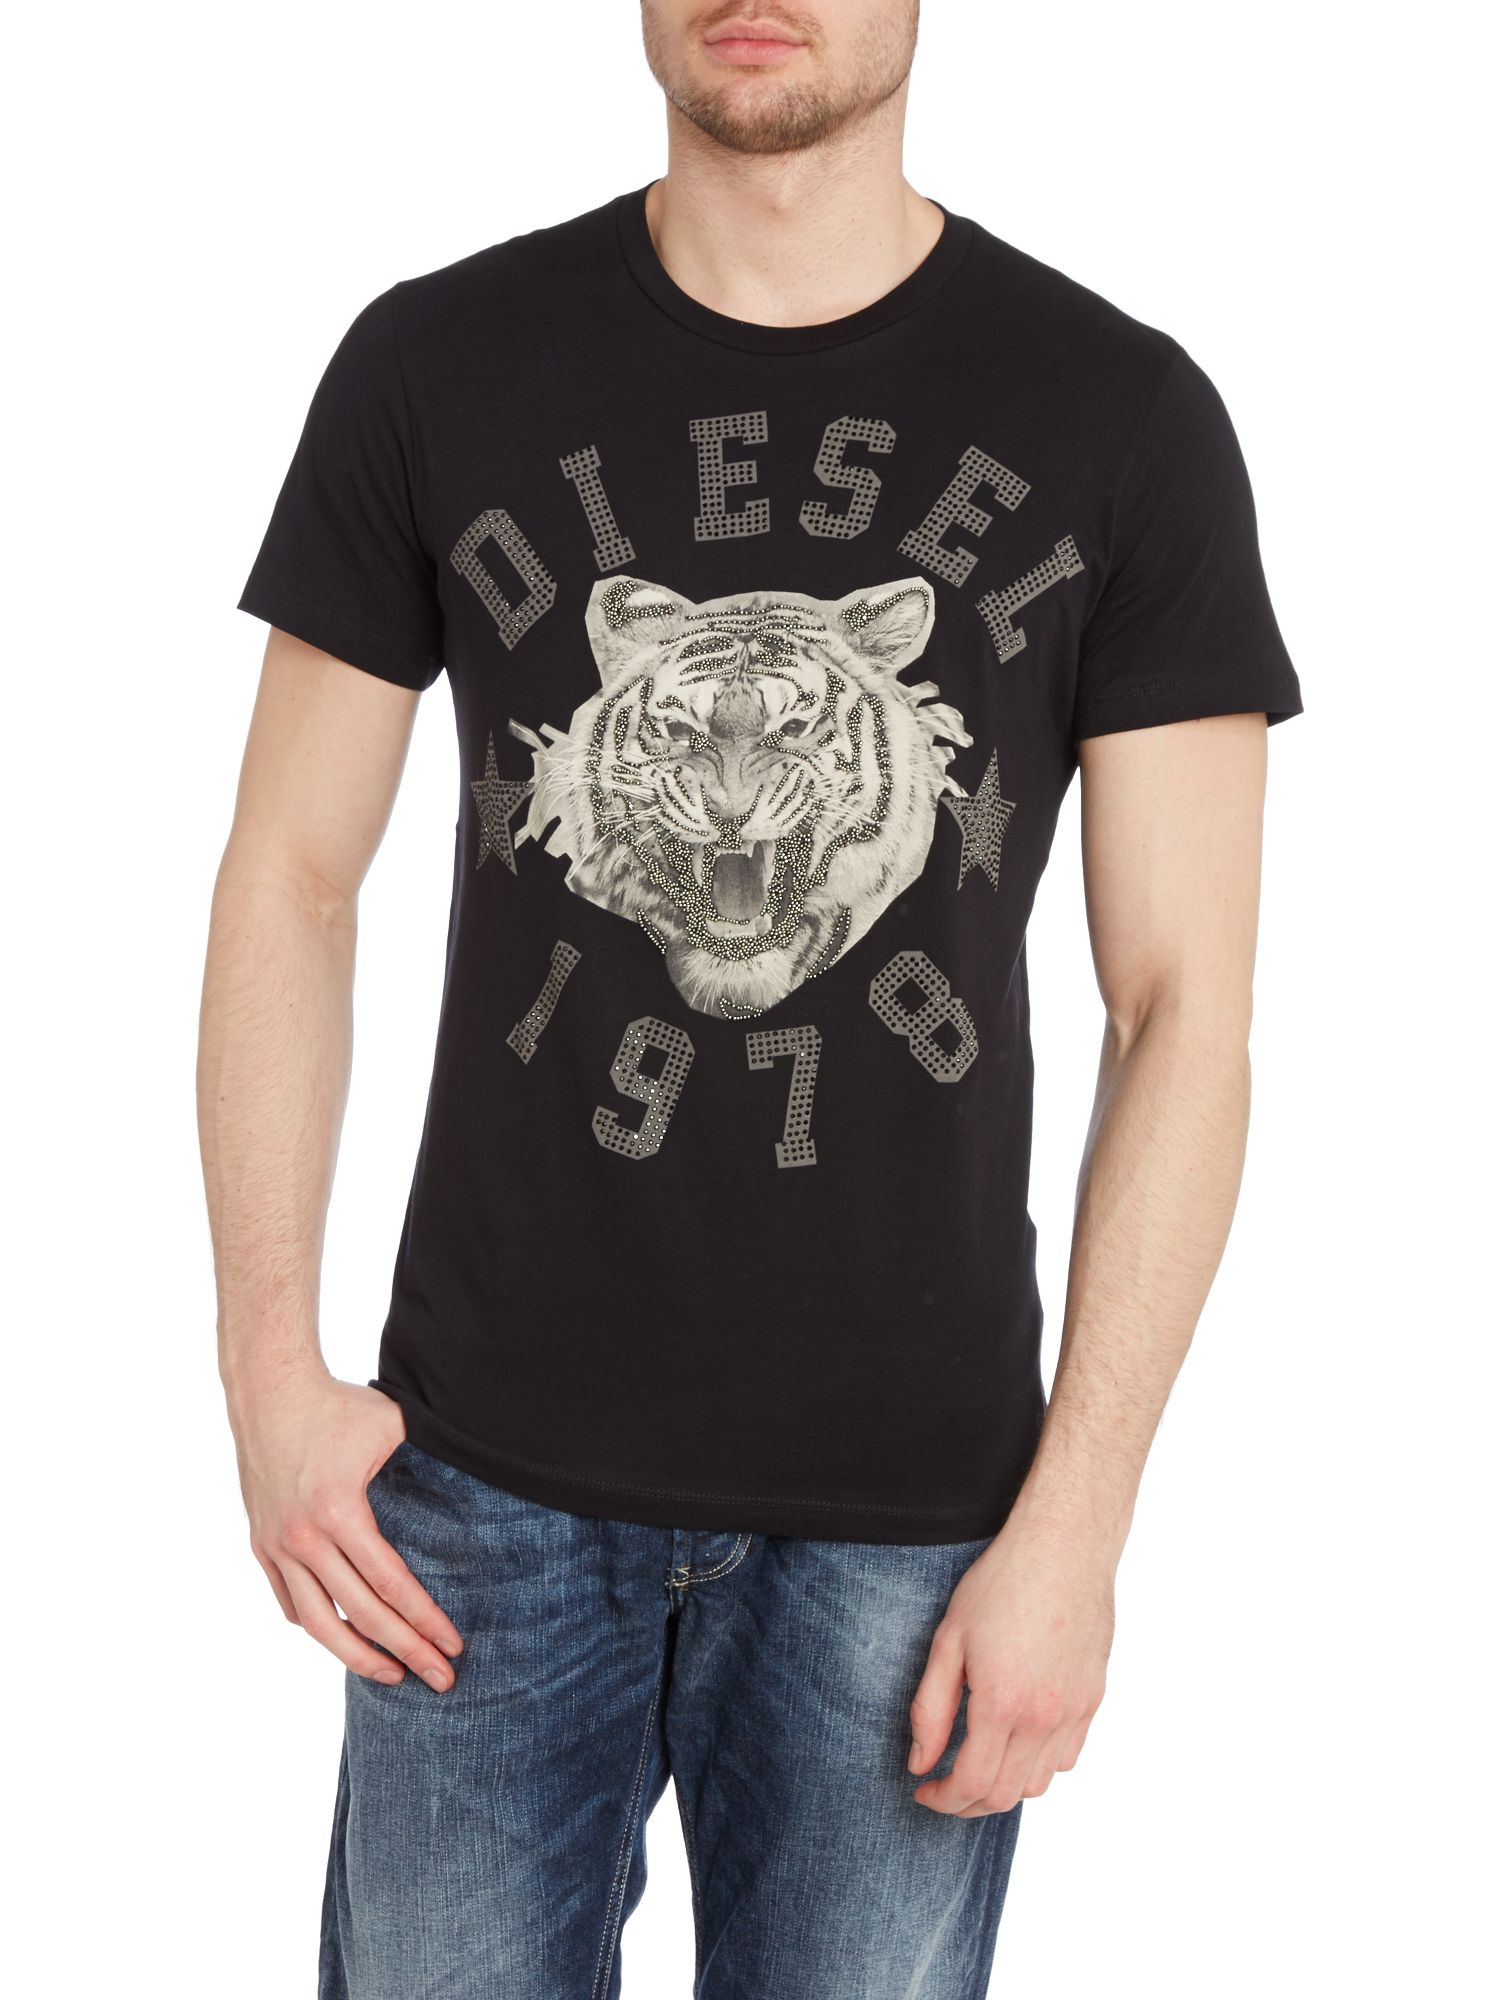 T-tgr diamante printed t shirt